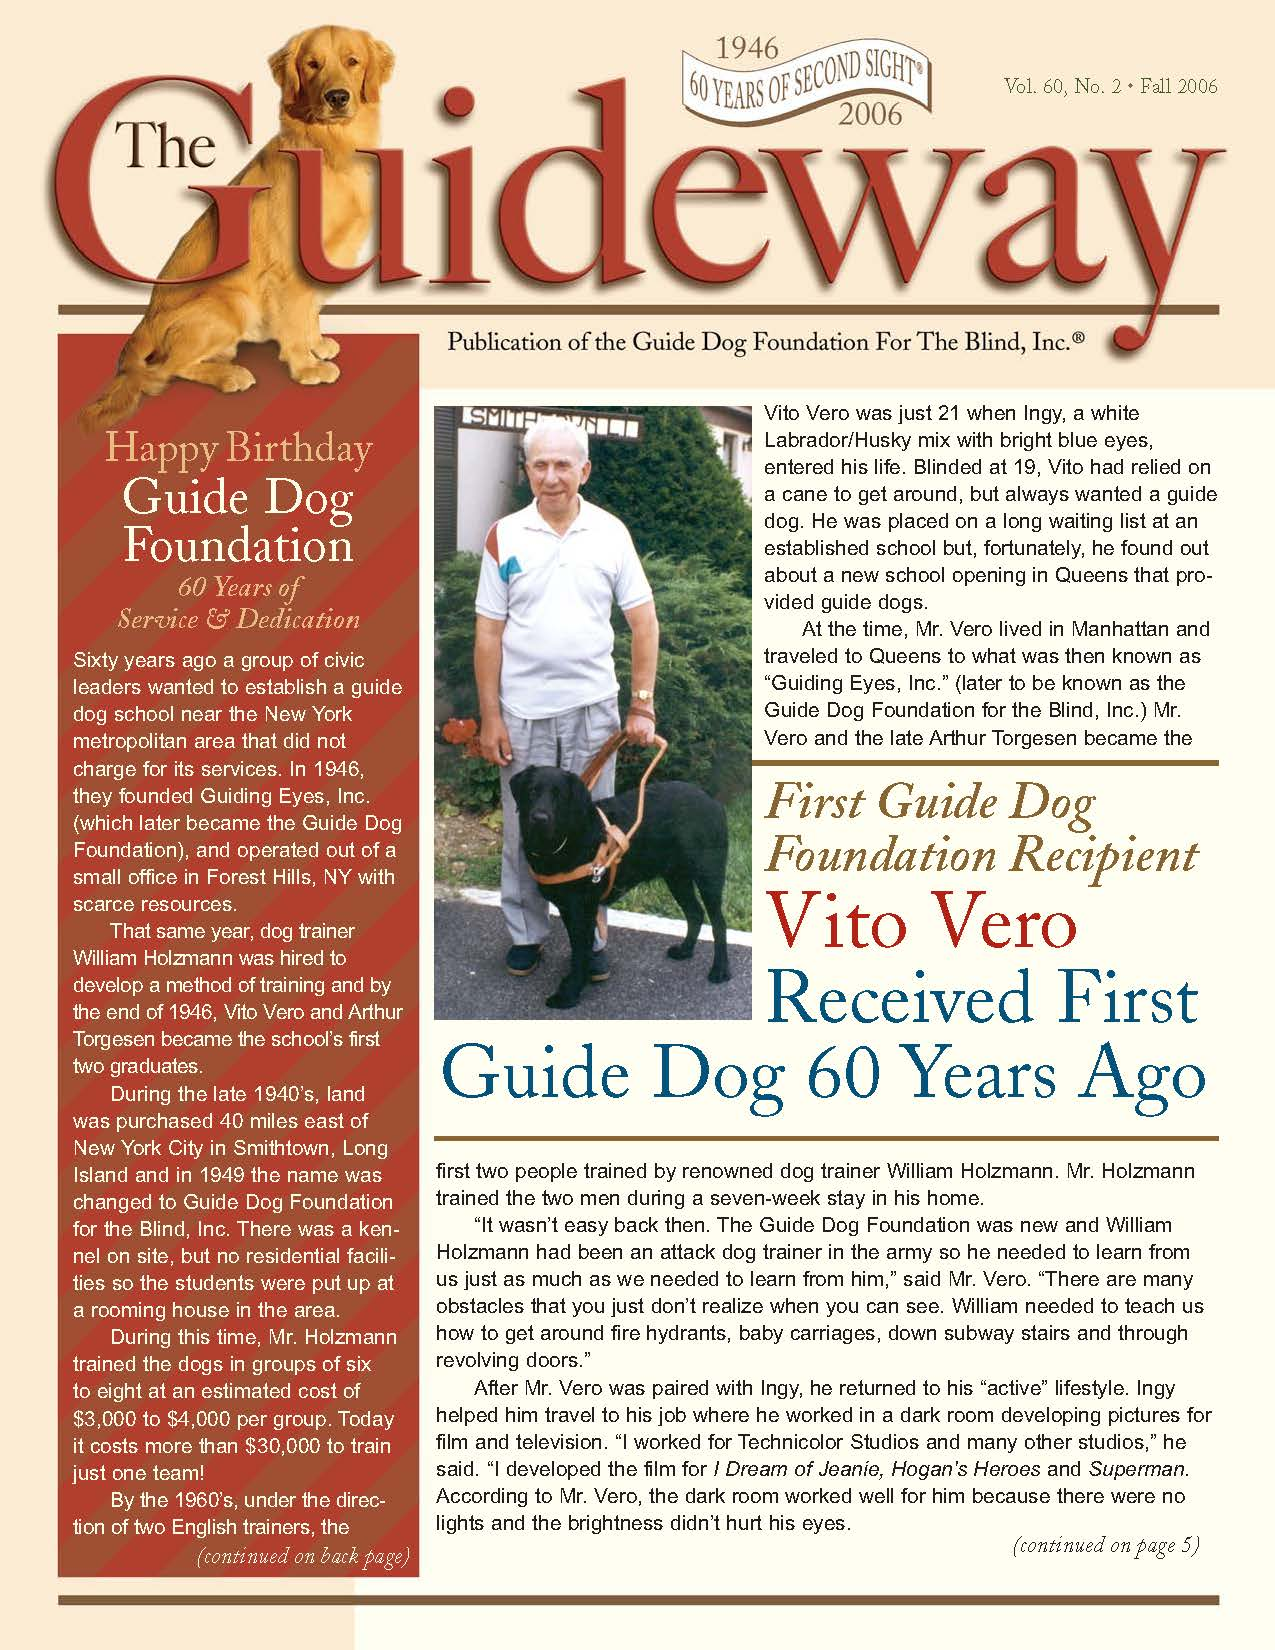 Gyuideway image from 2006 edition.